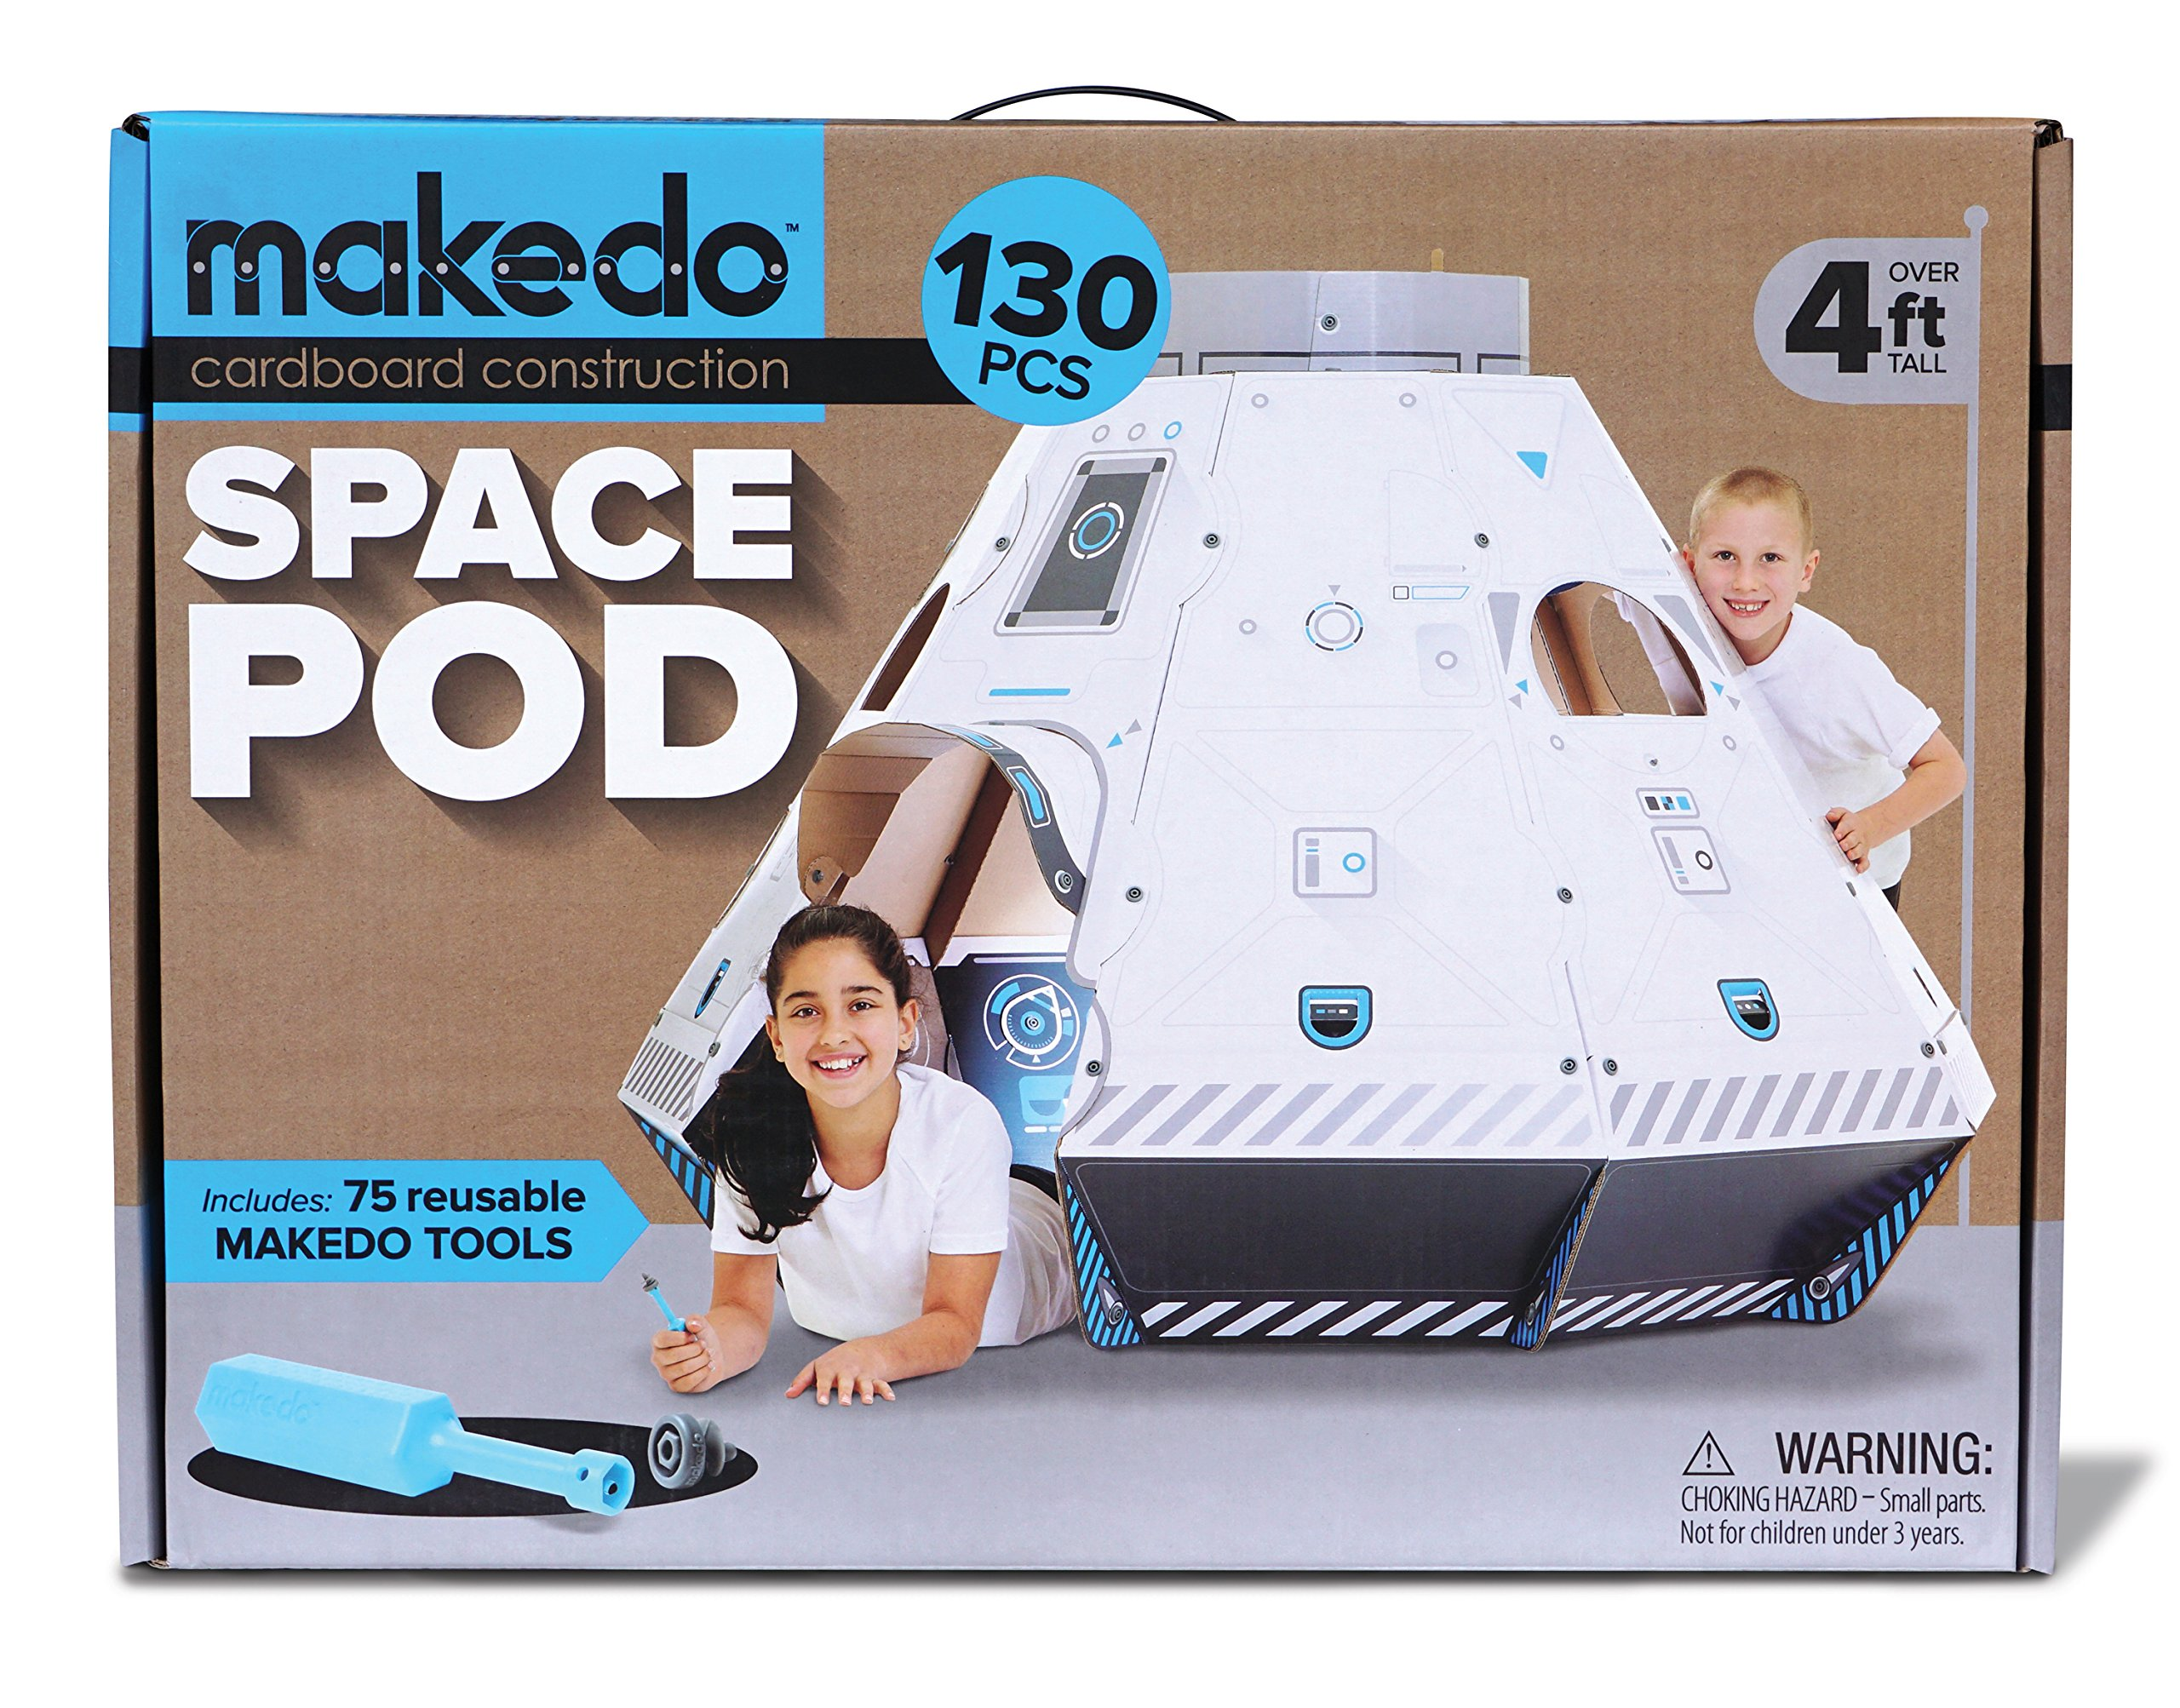 Makedo Cardboard Construction Space Pod - Ready To Build Construction Playset - STEM Learning Project - Stands Over 4 Ft Tall When Assembled - Includes 75 Reusable Makedo Tools